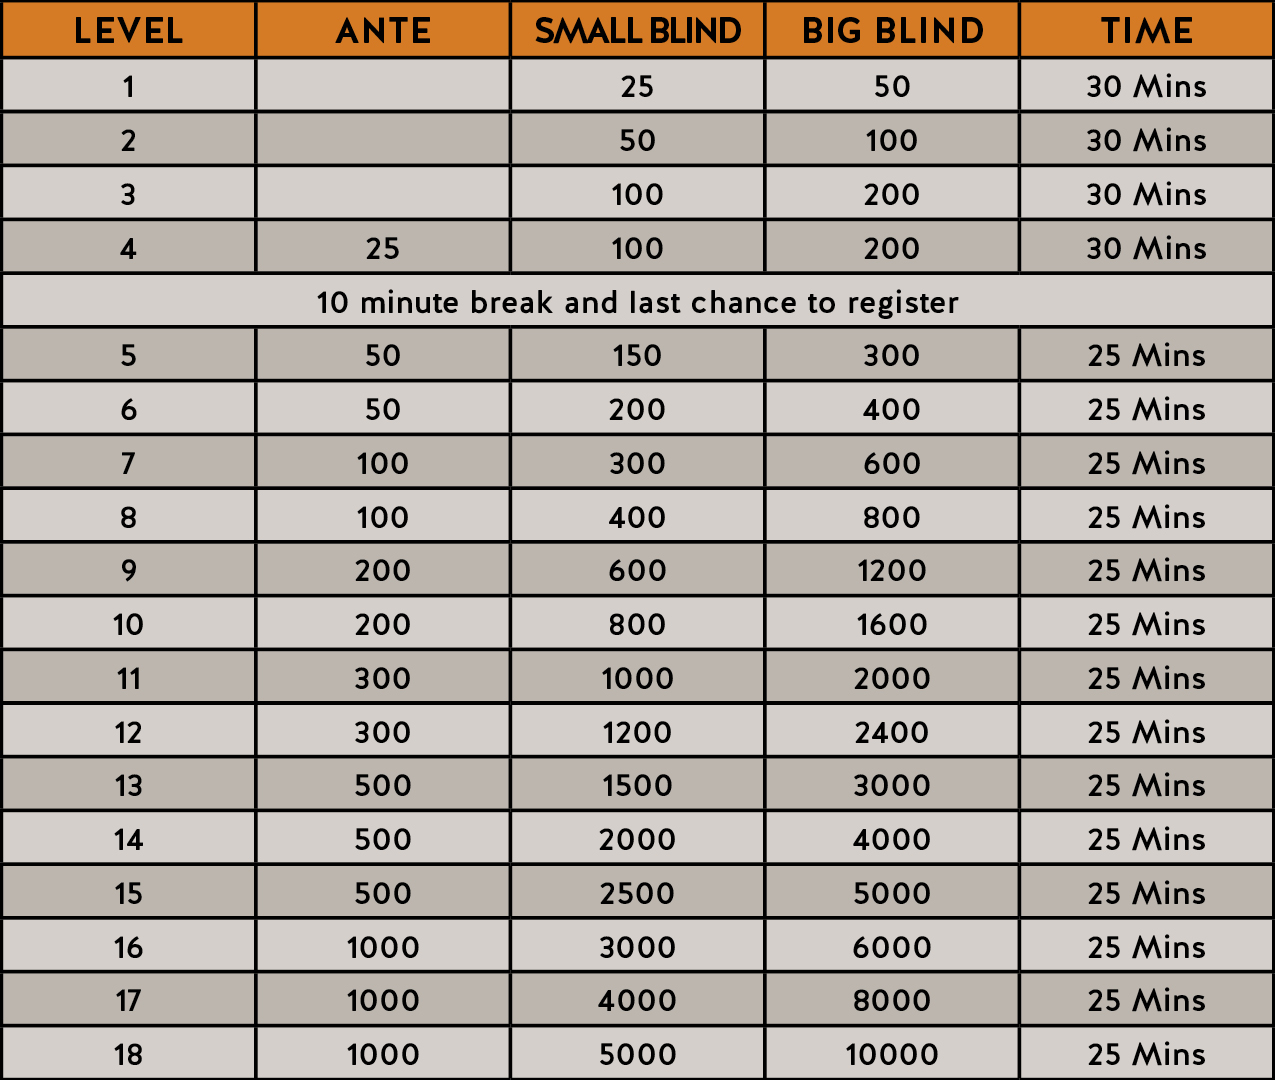 There will be 10-minute breaks after levels 8, 12, 15.